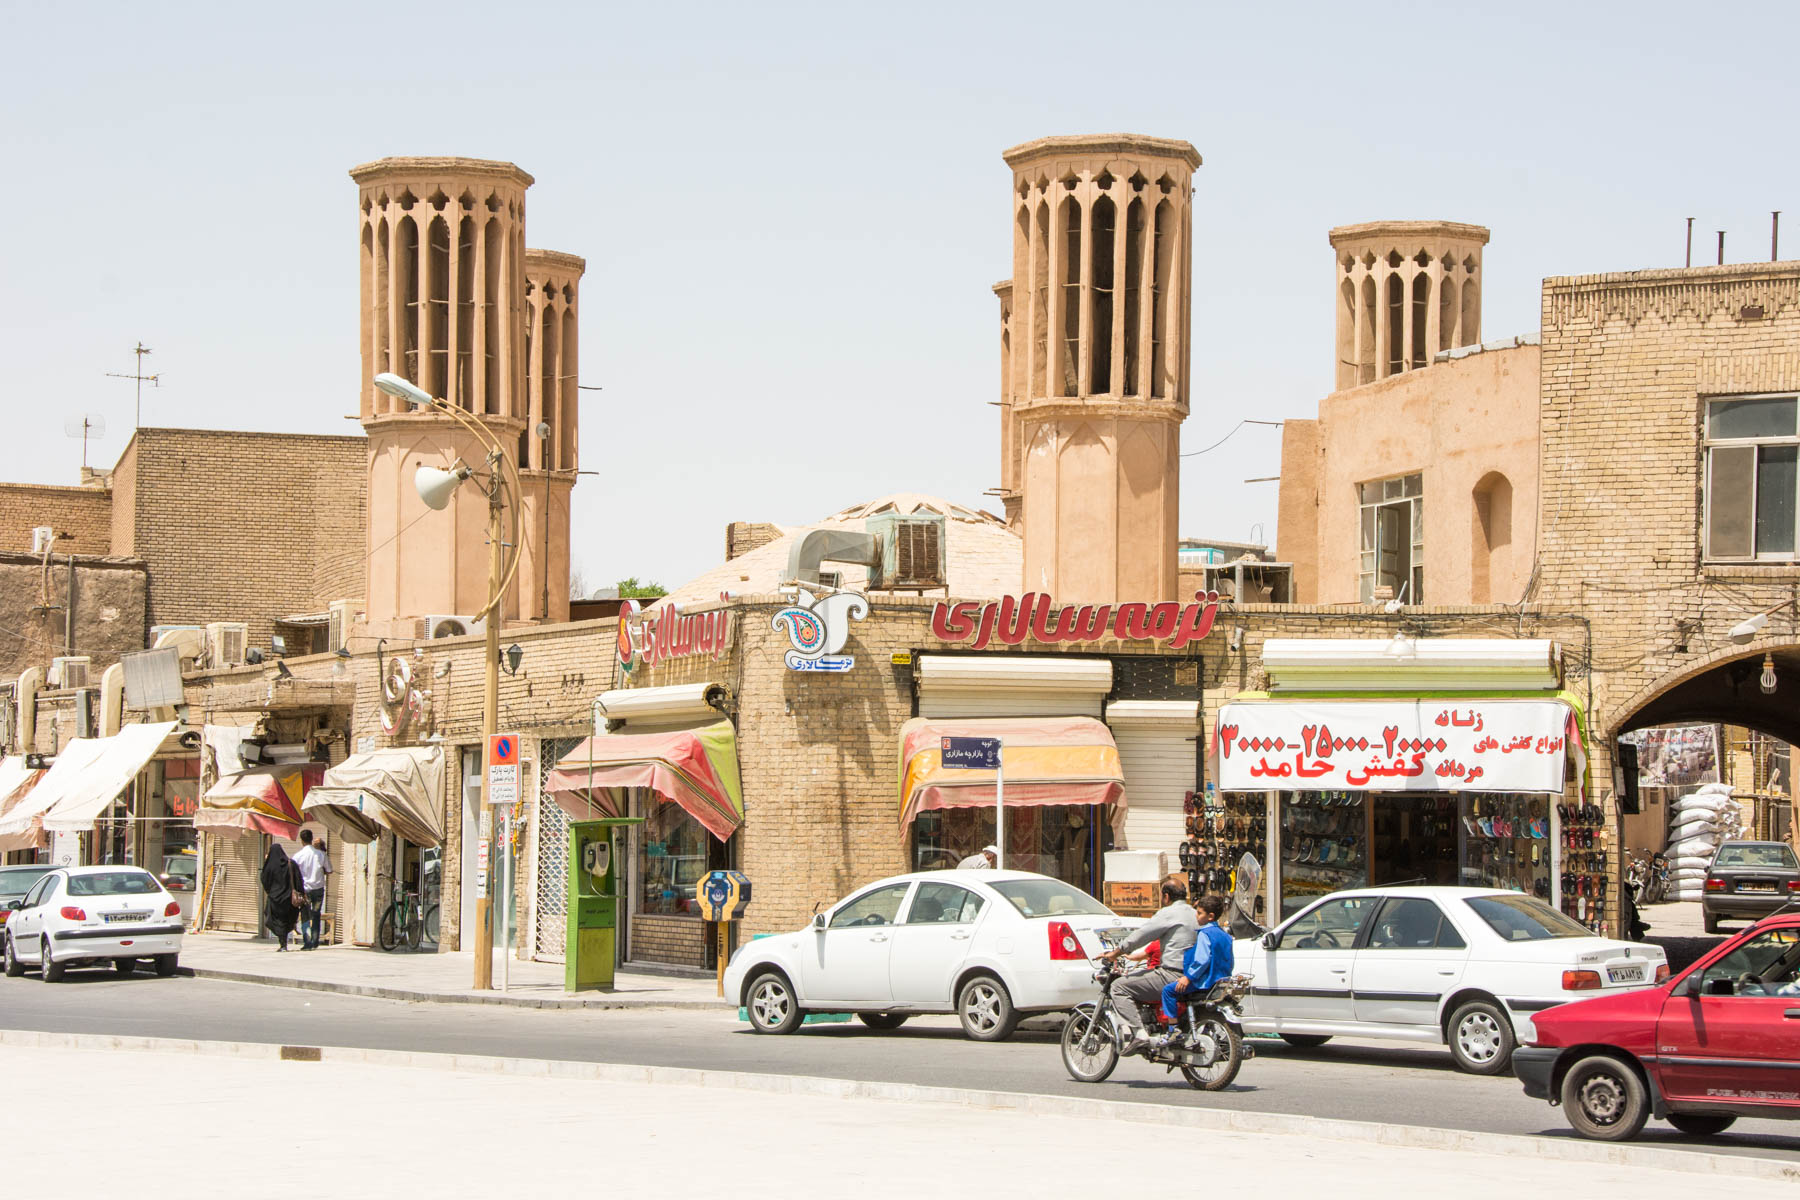 Two week Iran travel itinerary - The traditional and iconic windcatchers (wind towers) of Yazd - Lost With Purpose